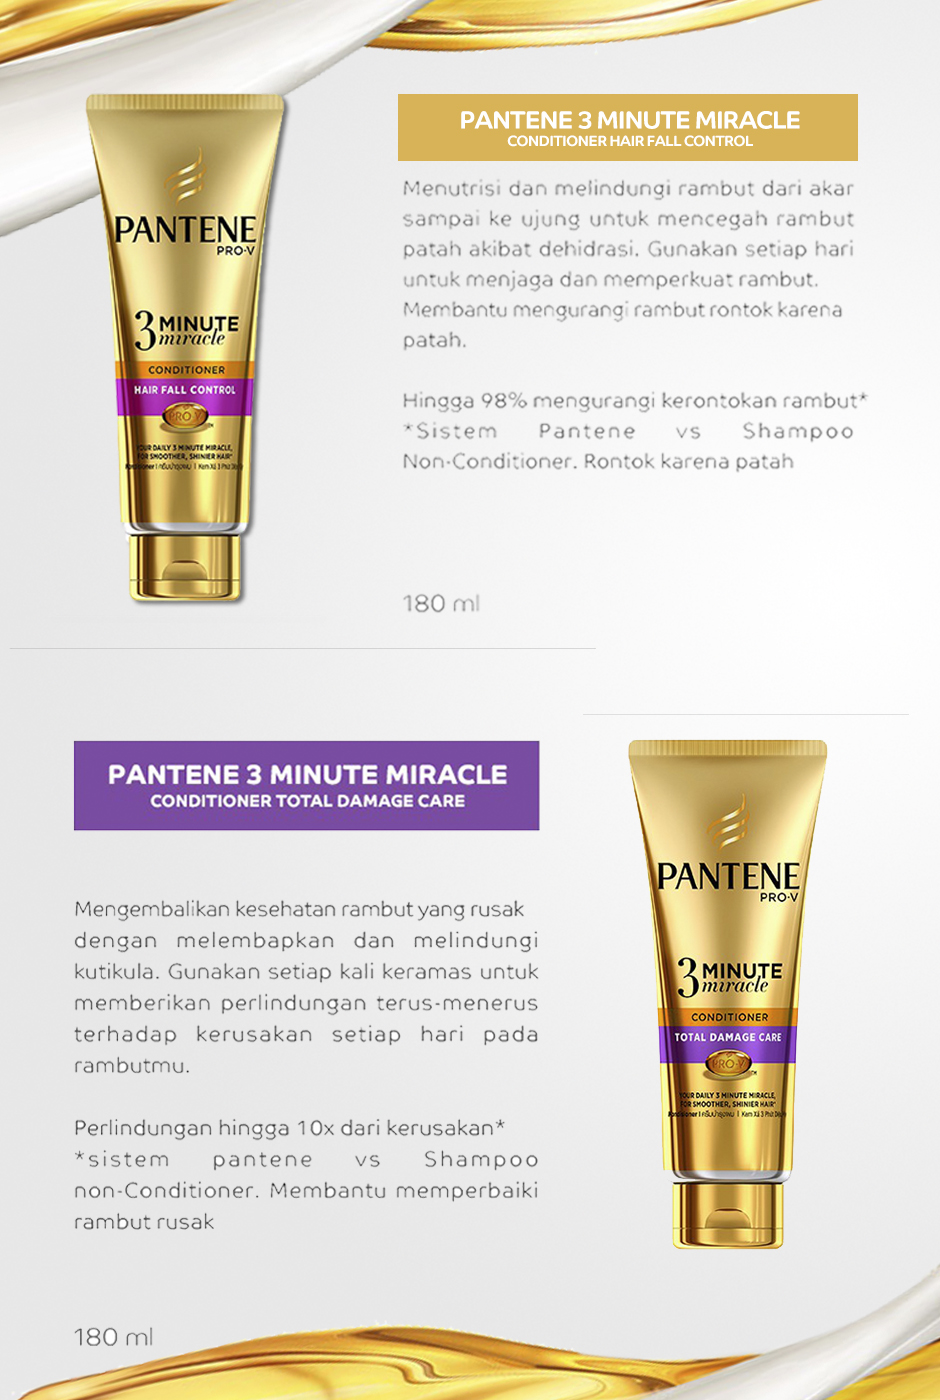 Buy Bundle Pantene Shampoo 750 Ml Deals For Only Rp102800 Instead Sampo Total Damage Care 750ml Highlights